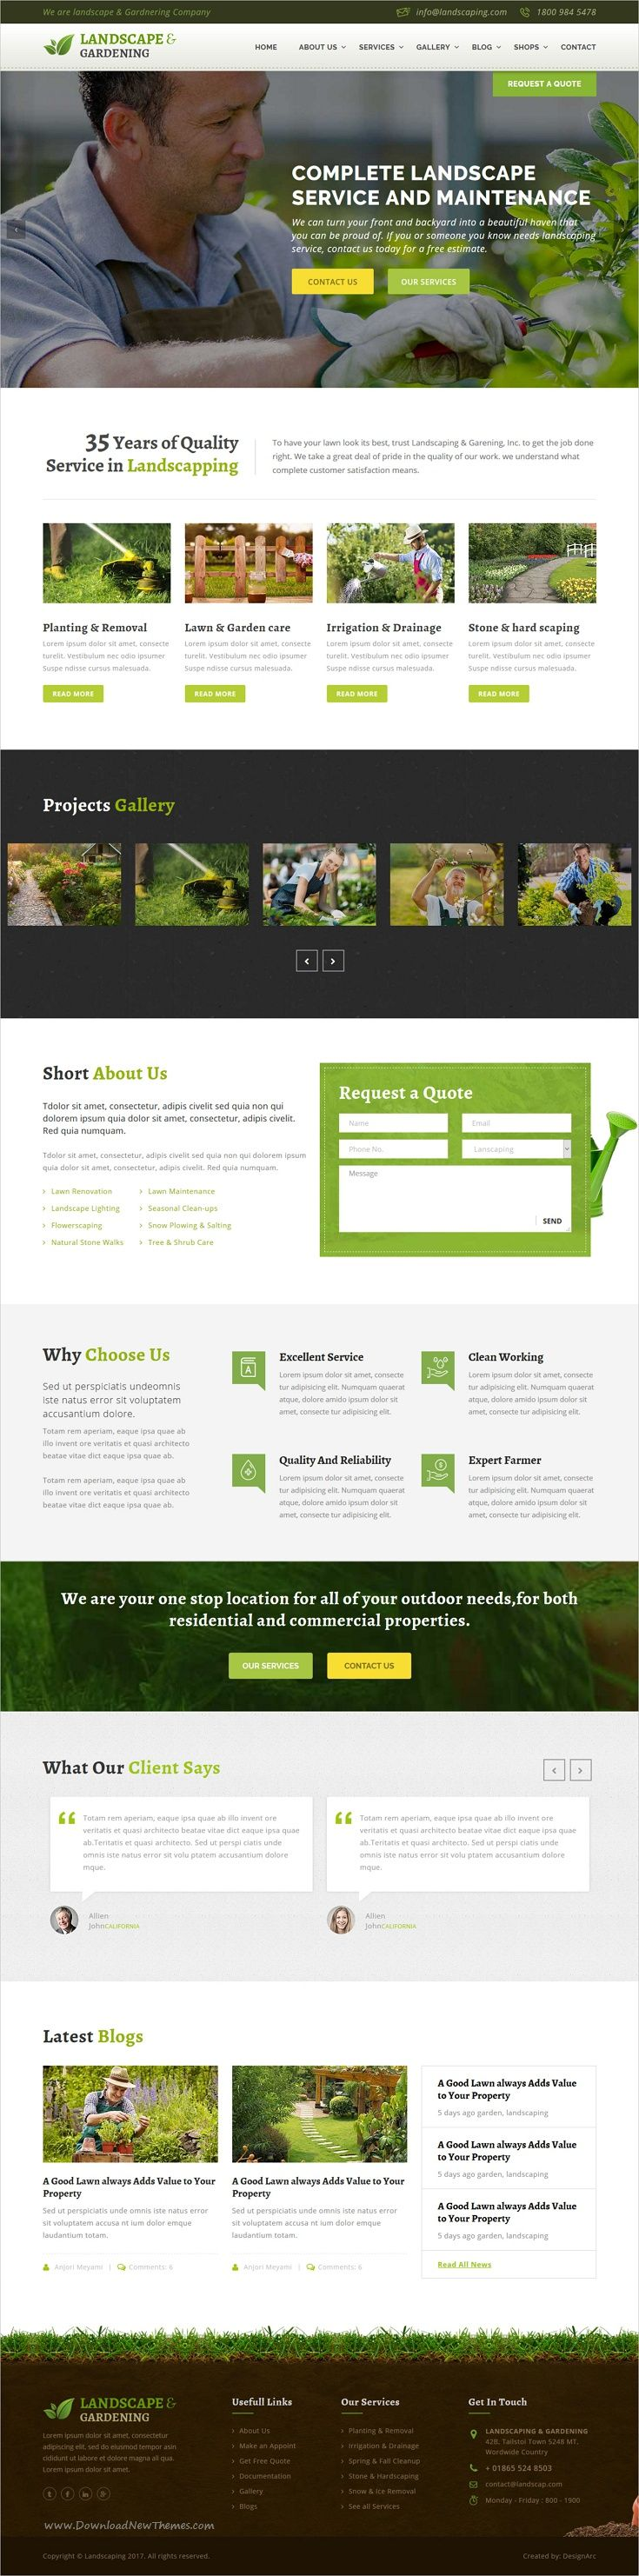 Landscape & gardening is a wonderful 4in1 responsive HTML #bootstrap template  #Gardening, #Landscaping Companies, Lawn Services, Agriculture, Landscape Architects and all type of Gardner's Business websites download now➩ https://themeforest.net/item/lanscape-gardening-html-template/17689207?ref=Datasata